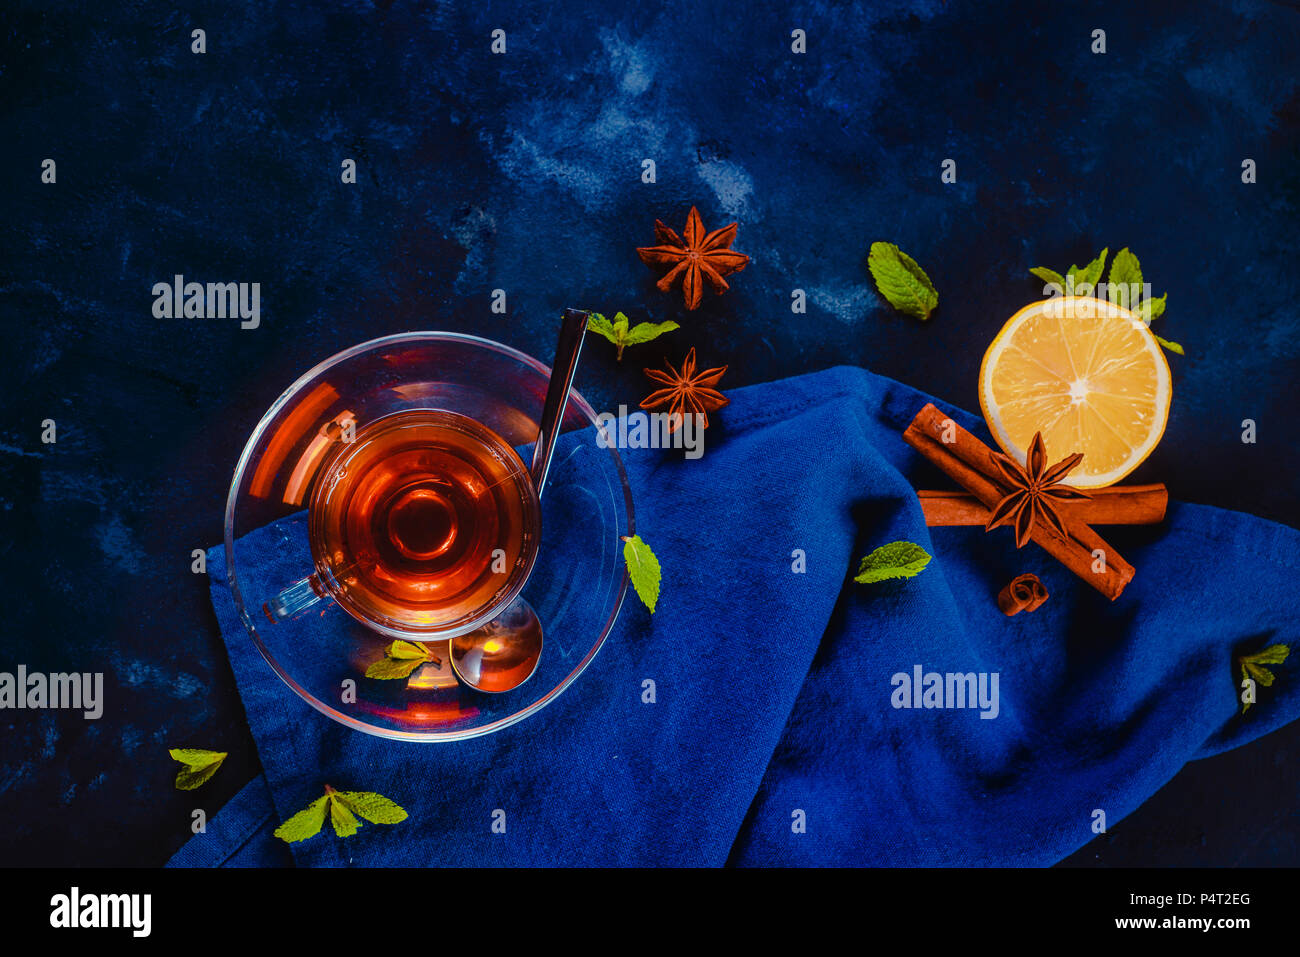 Hot drink header with glass teacup, linen napkin, lemon slices, cinnamon, anise stars and mint leaves on a dark background. Dark food photography flat Stock Photo